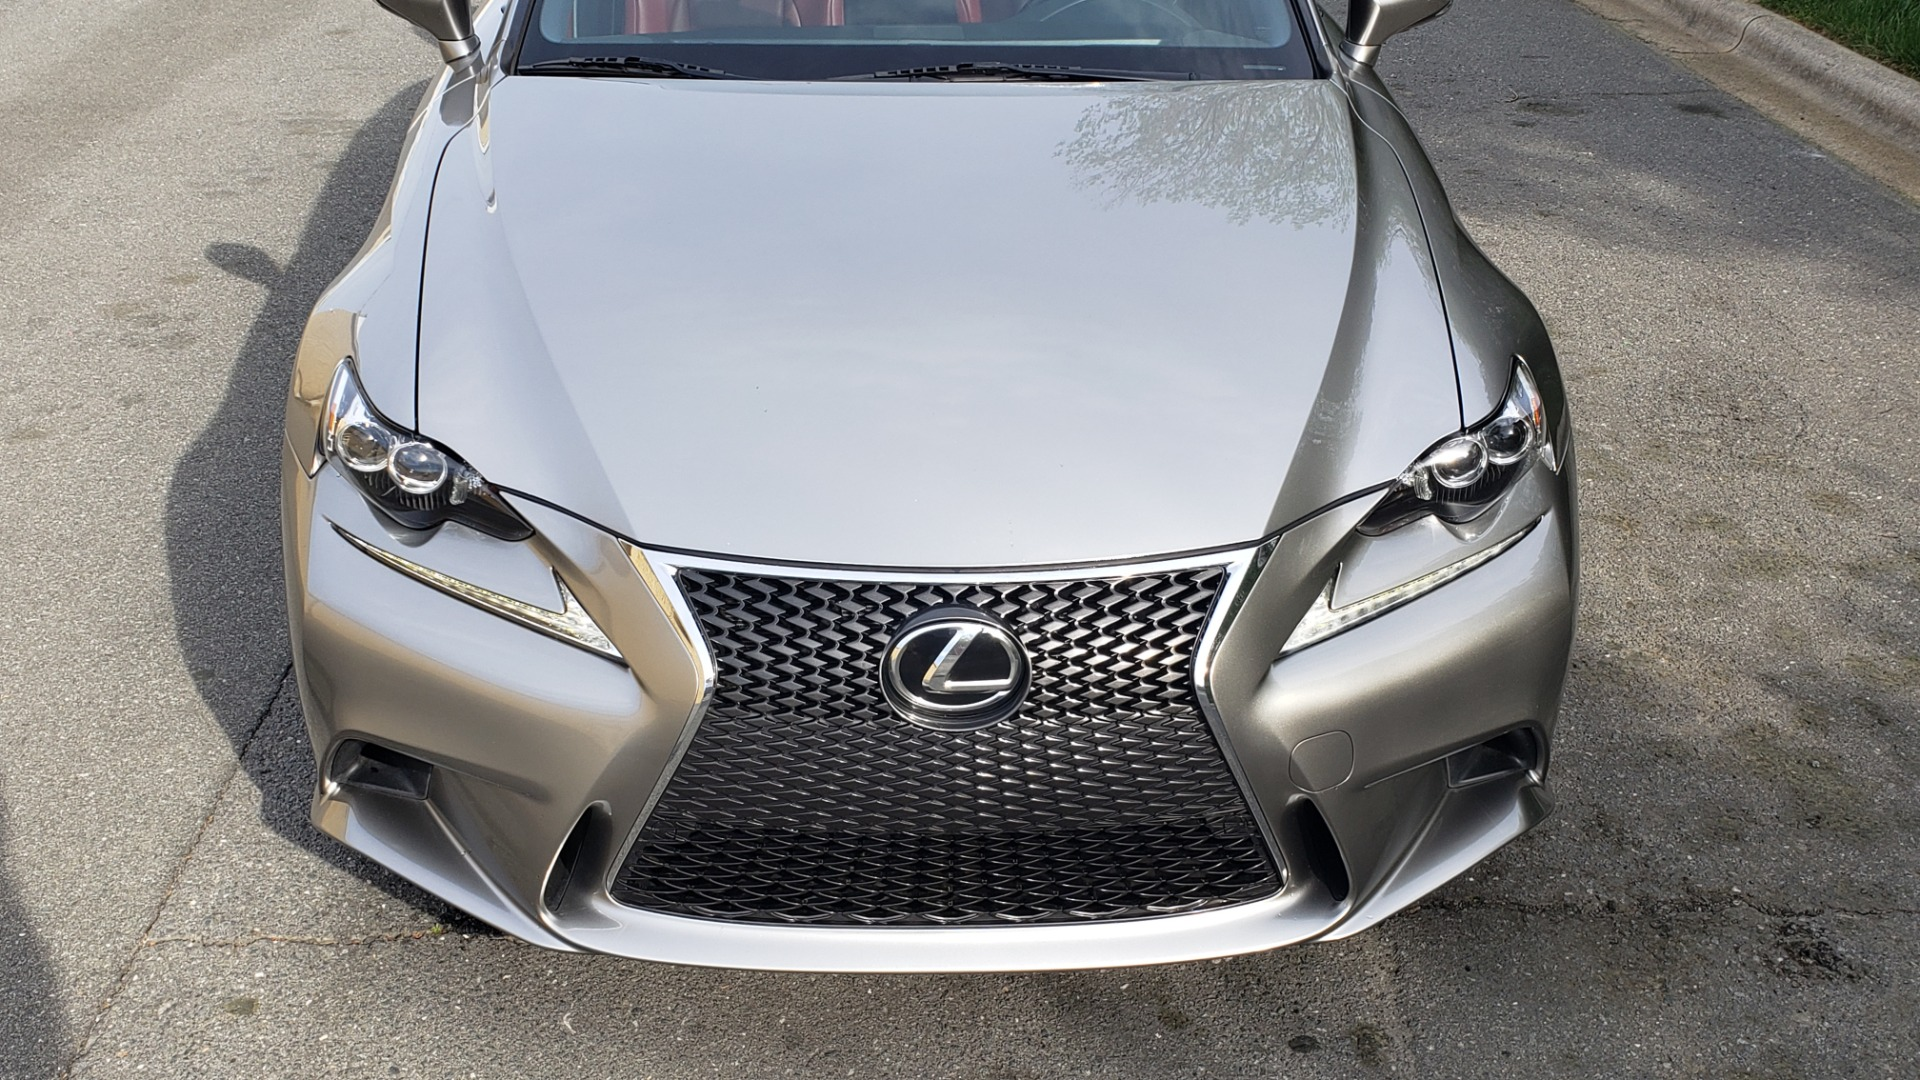 Used 2016 Lexus IS 200T F-SPORT / BSM / SUNROOF / VENTILATED SEATS / REARVIEW for sale Sold at Formula Imports in Charlotte NC 28227 14